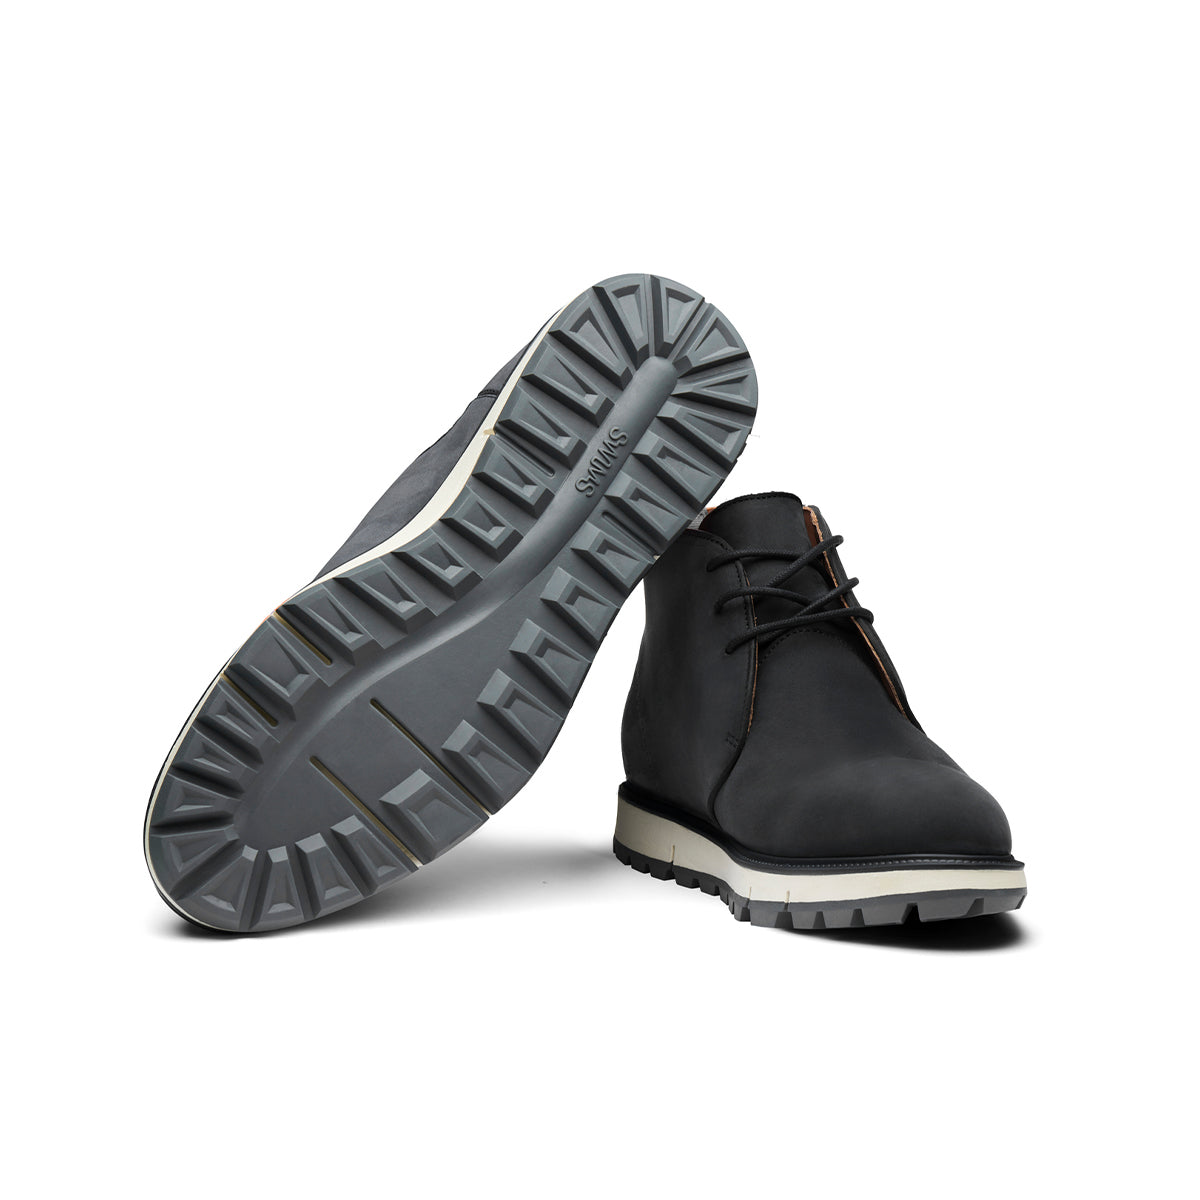 Motion Chukka Lug Sole - background::white,variant::black